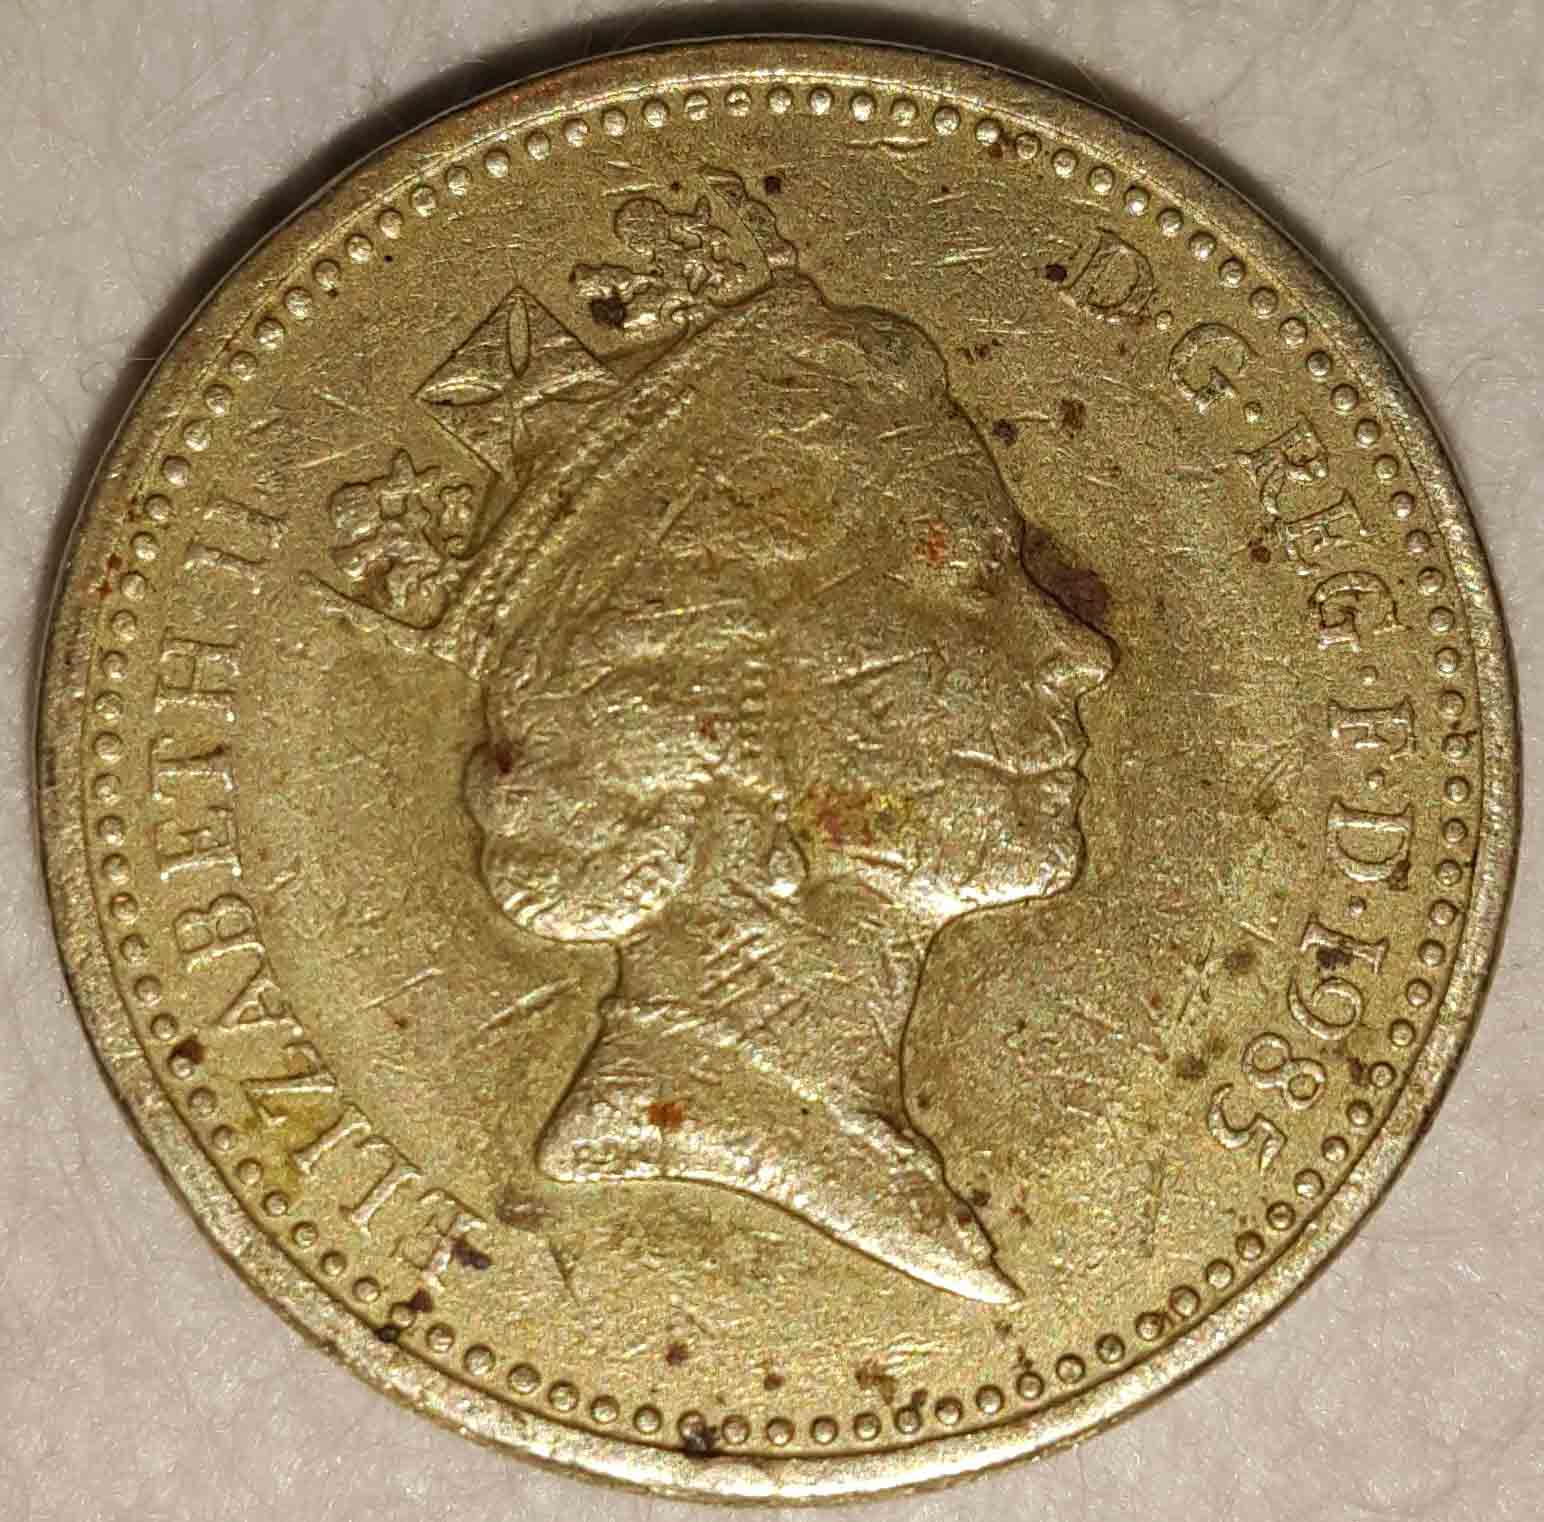 One pound elizabeth ii coin 1985 : Benjamin franklin